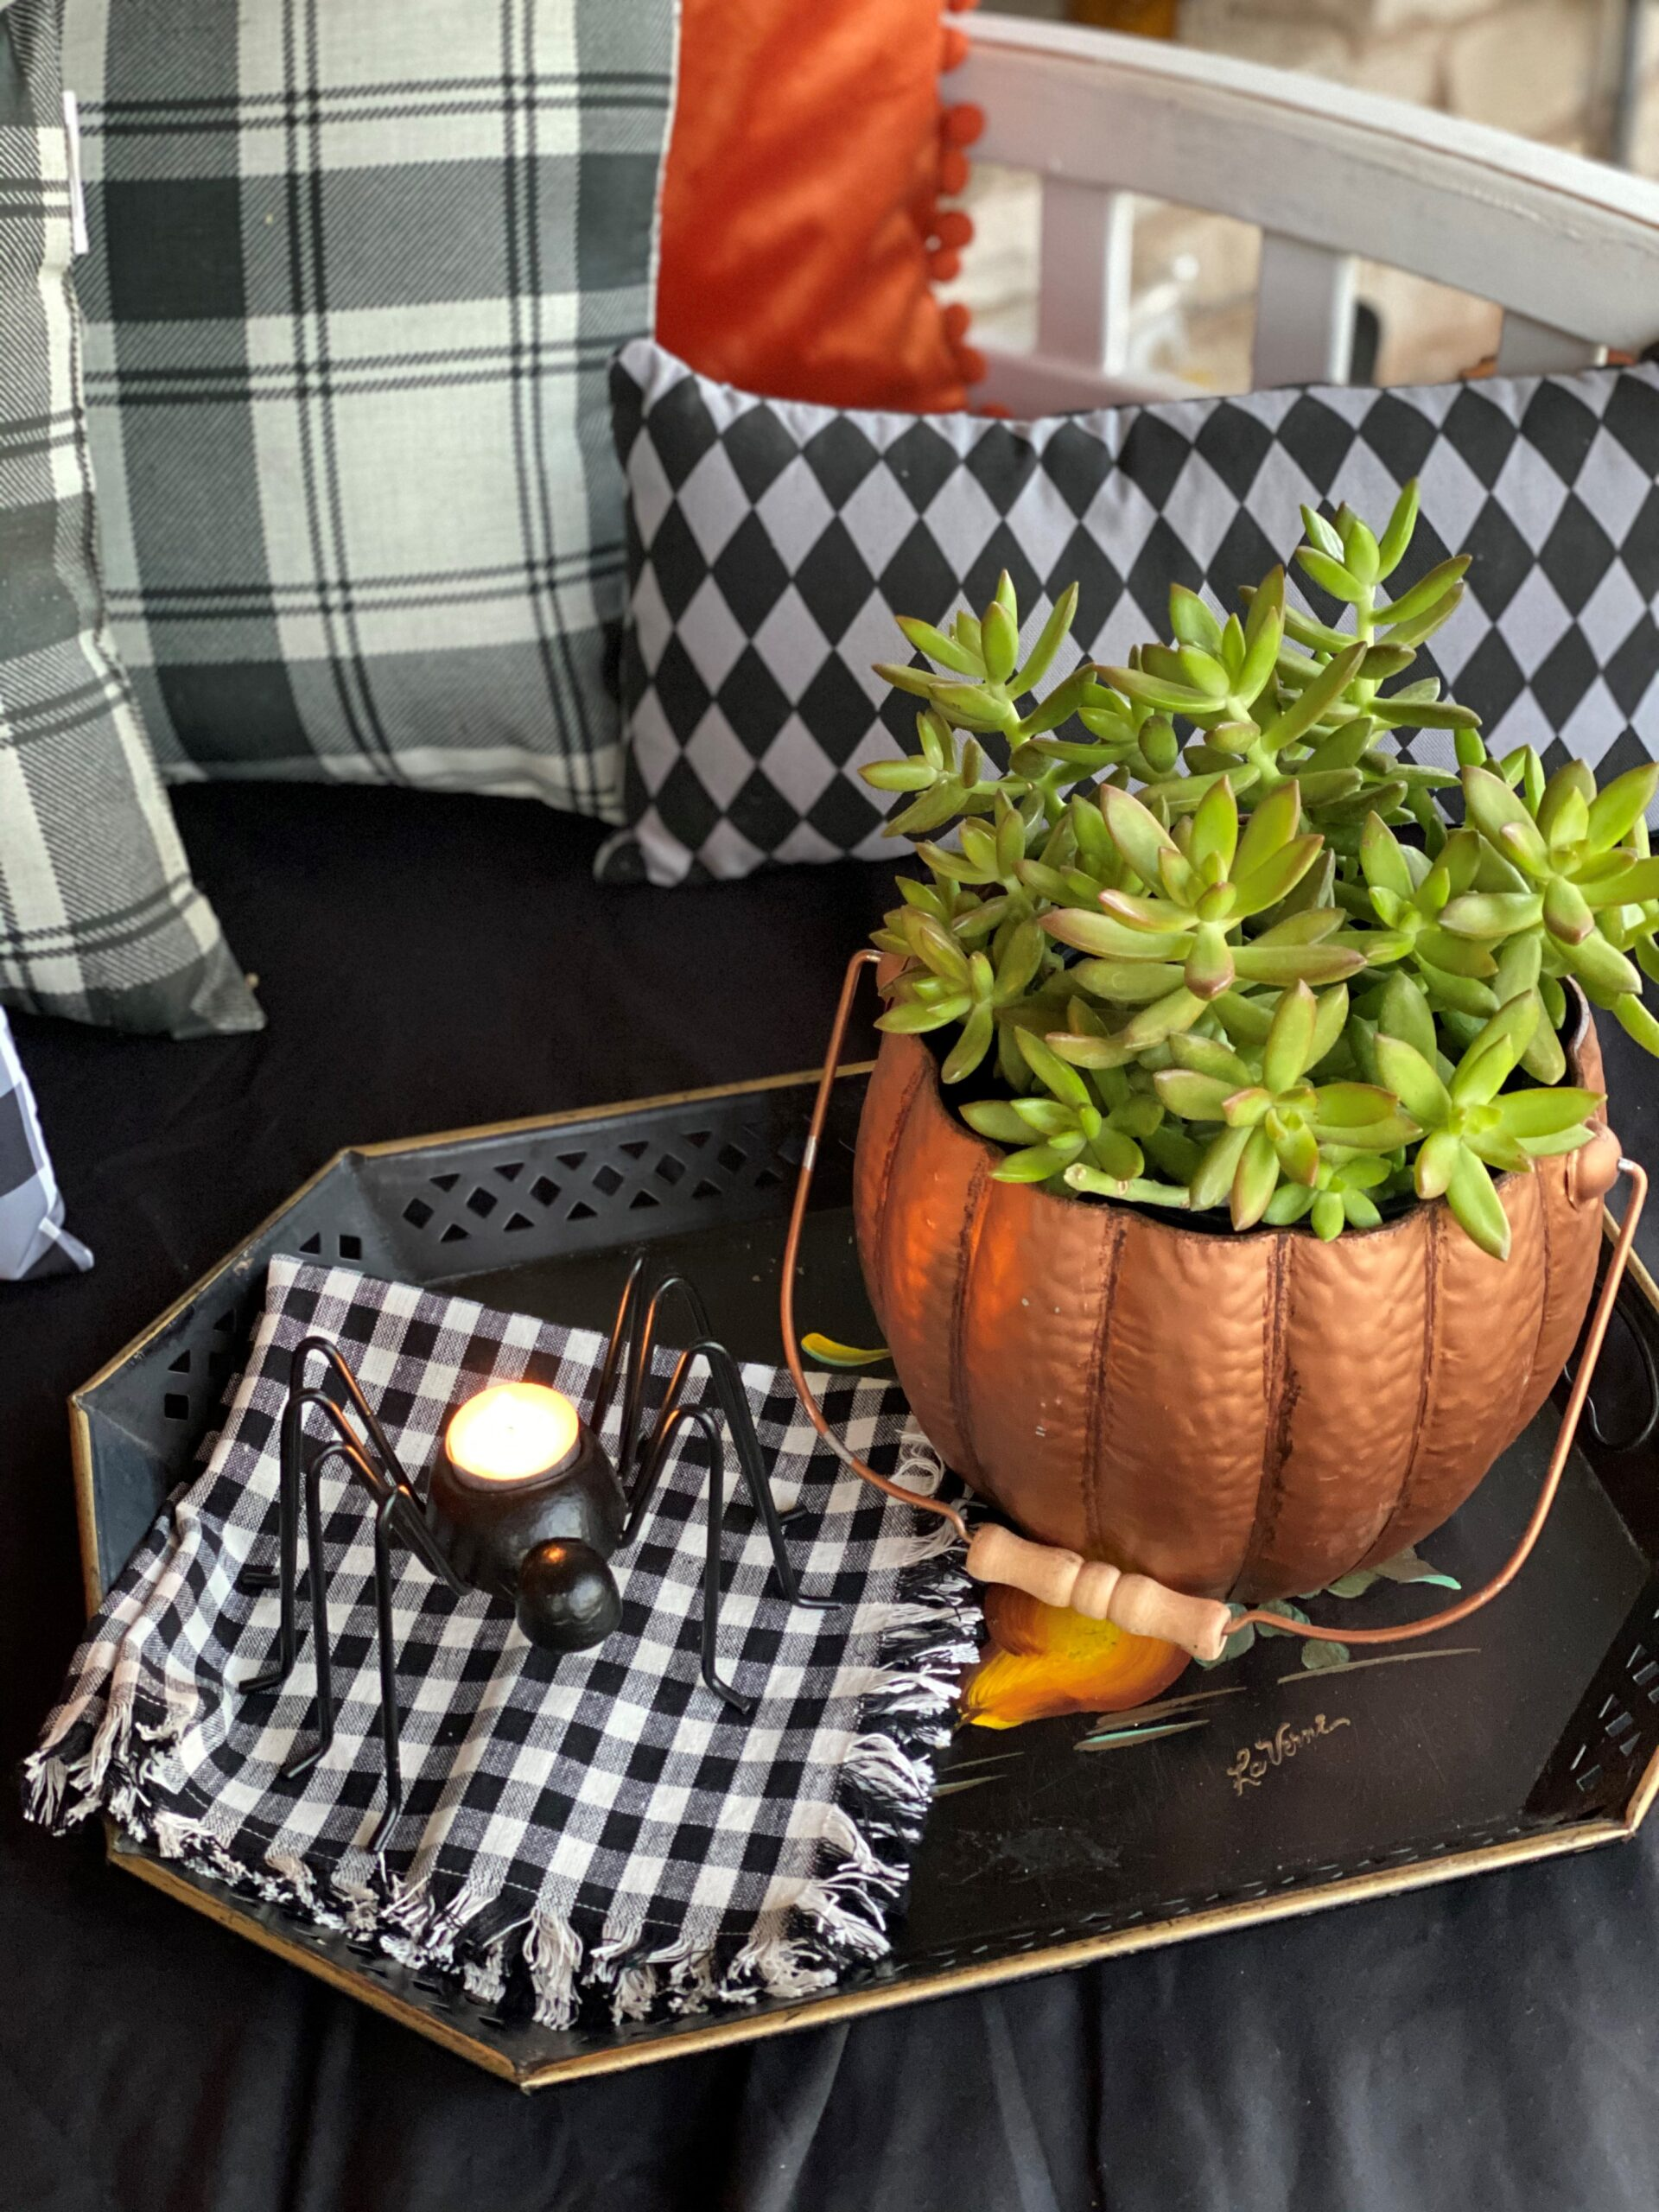 Halloween Front Porch Decorations, Vintage Rustic Front Porch with Spider Candle and Pumpkin Succulents